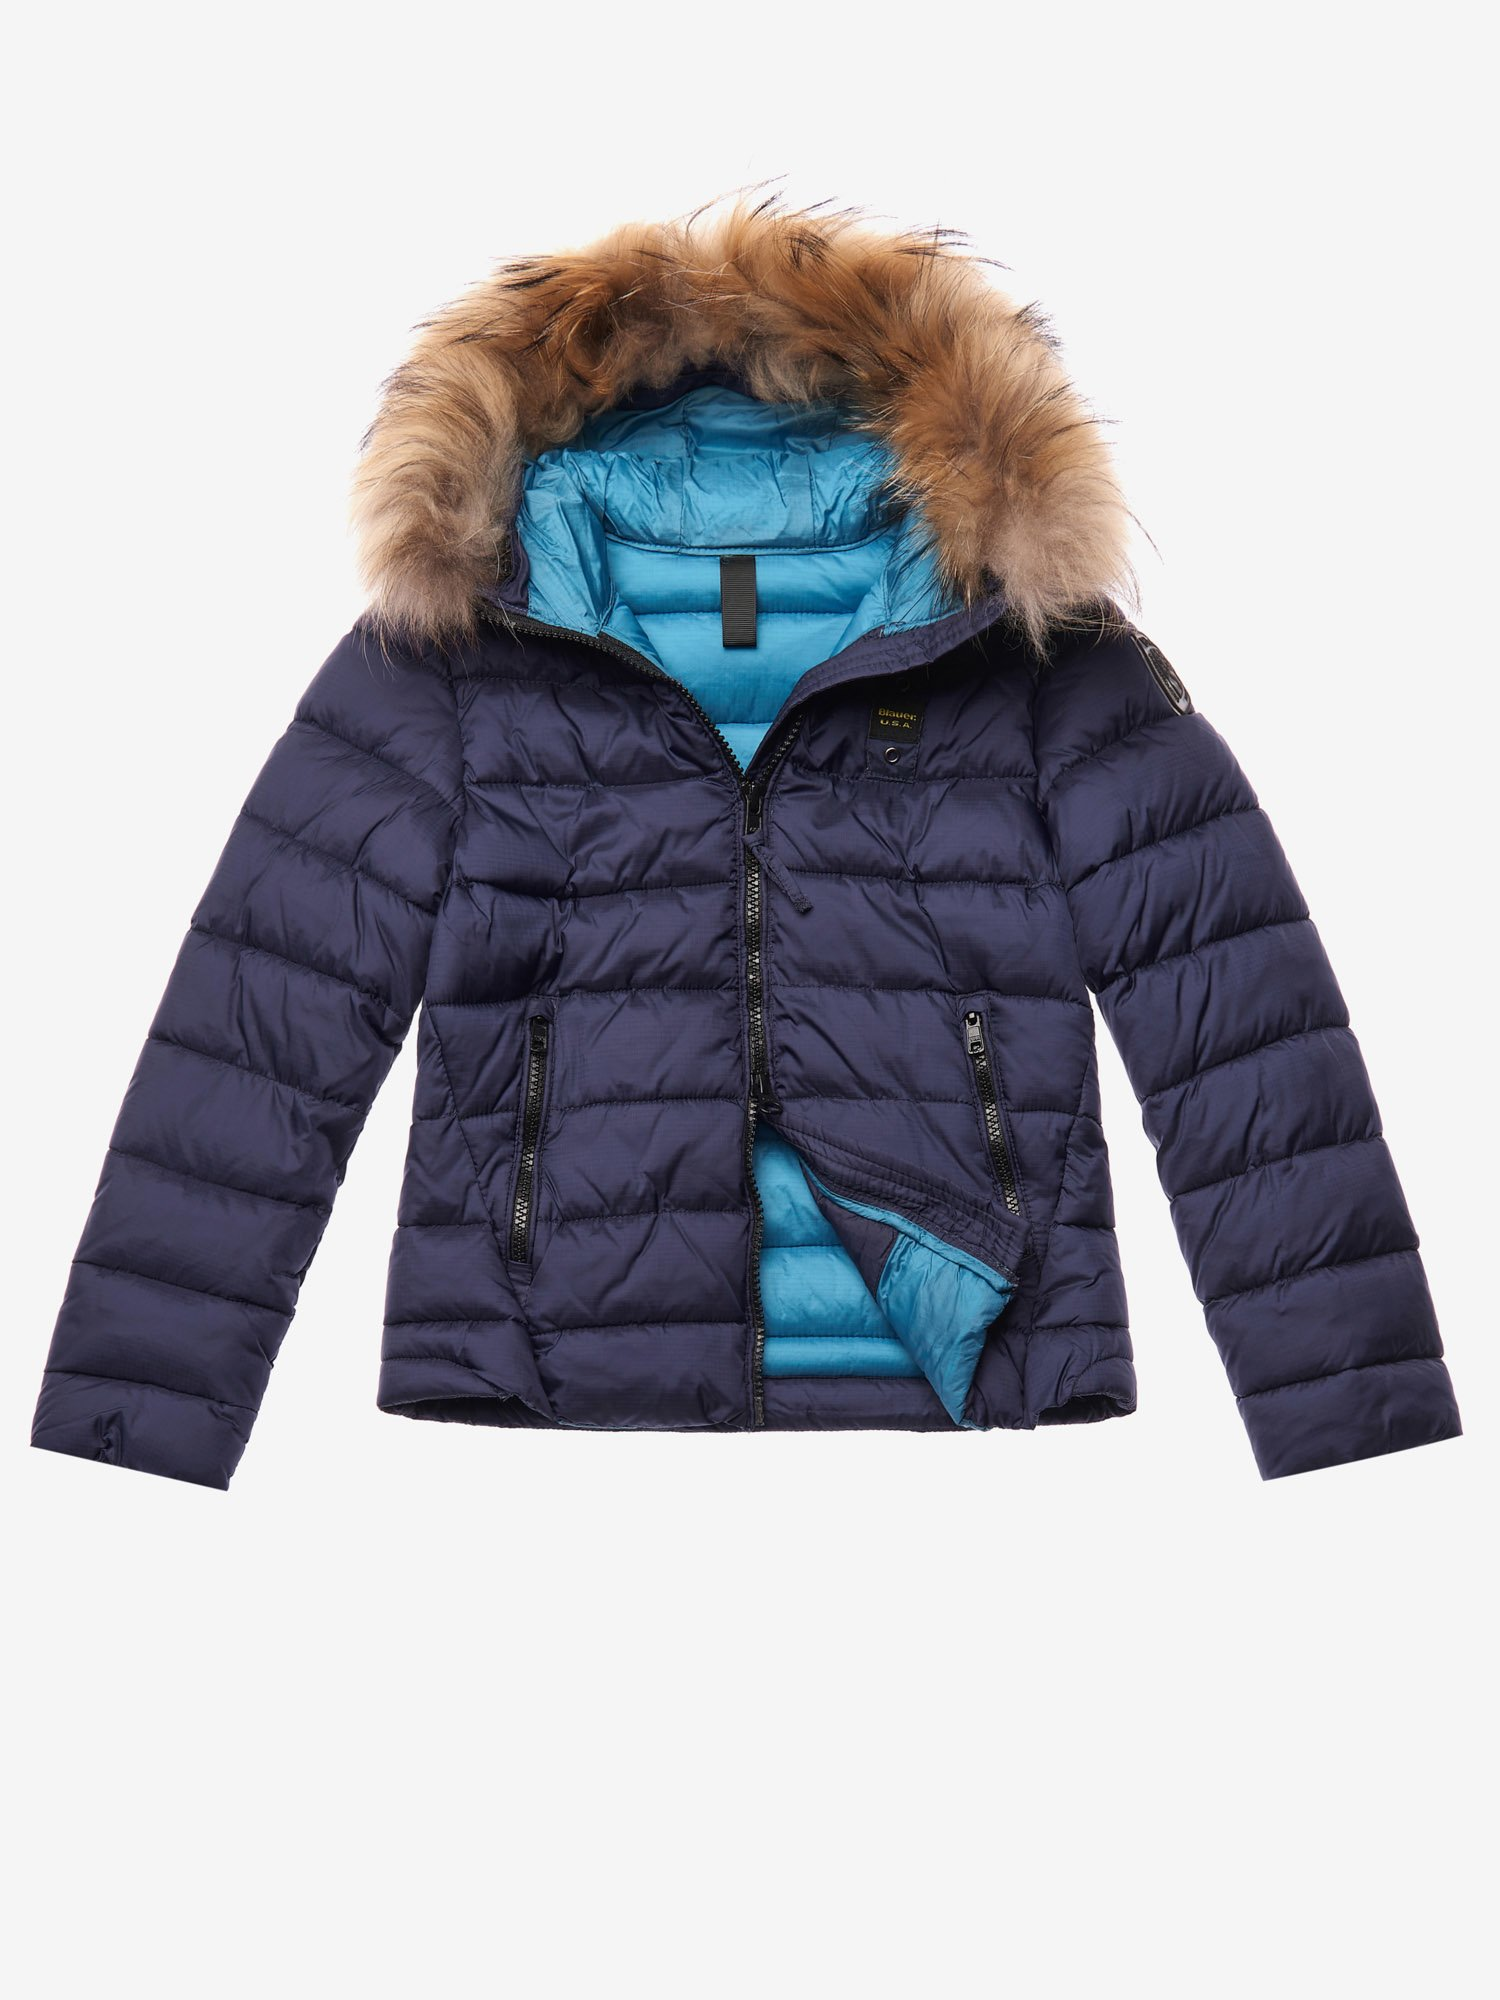 HOPKINS  BIO DOWN JACKET WITH HOOD - Blauer